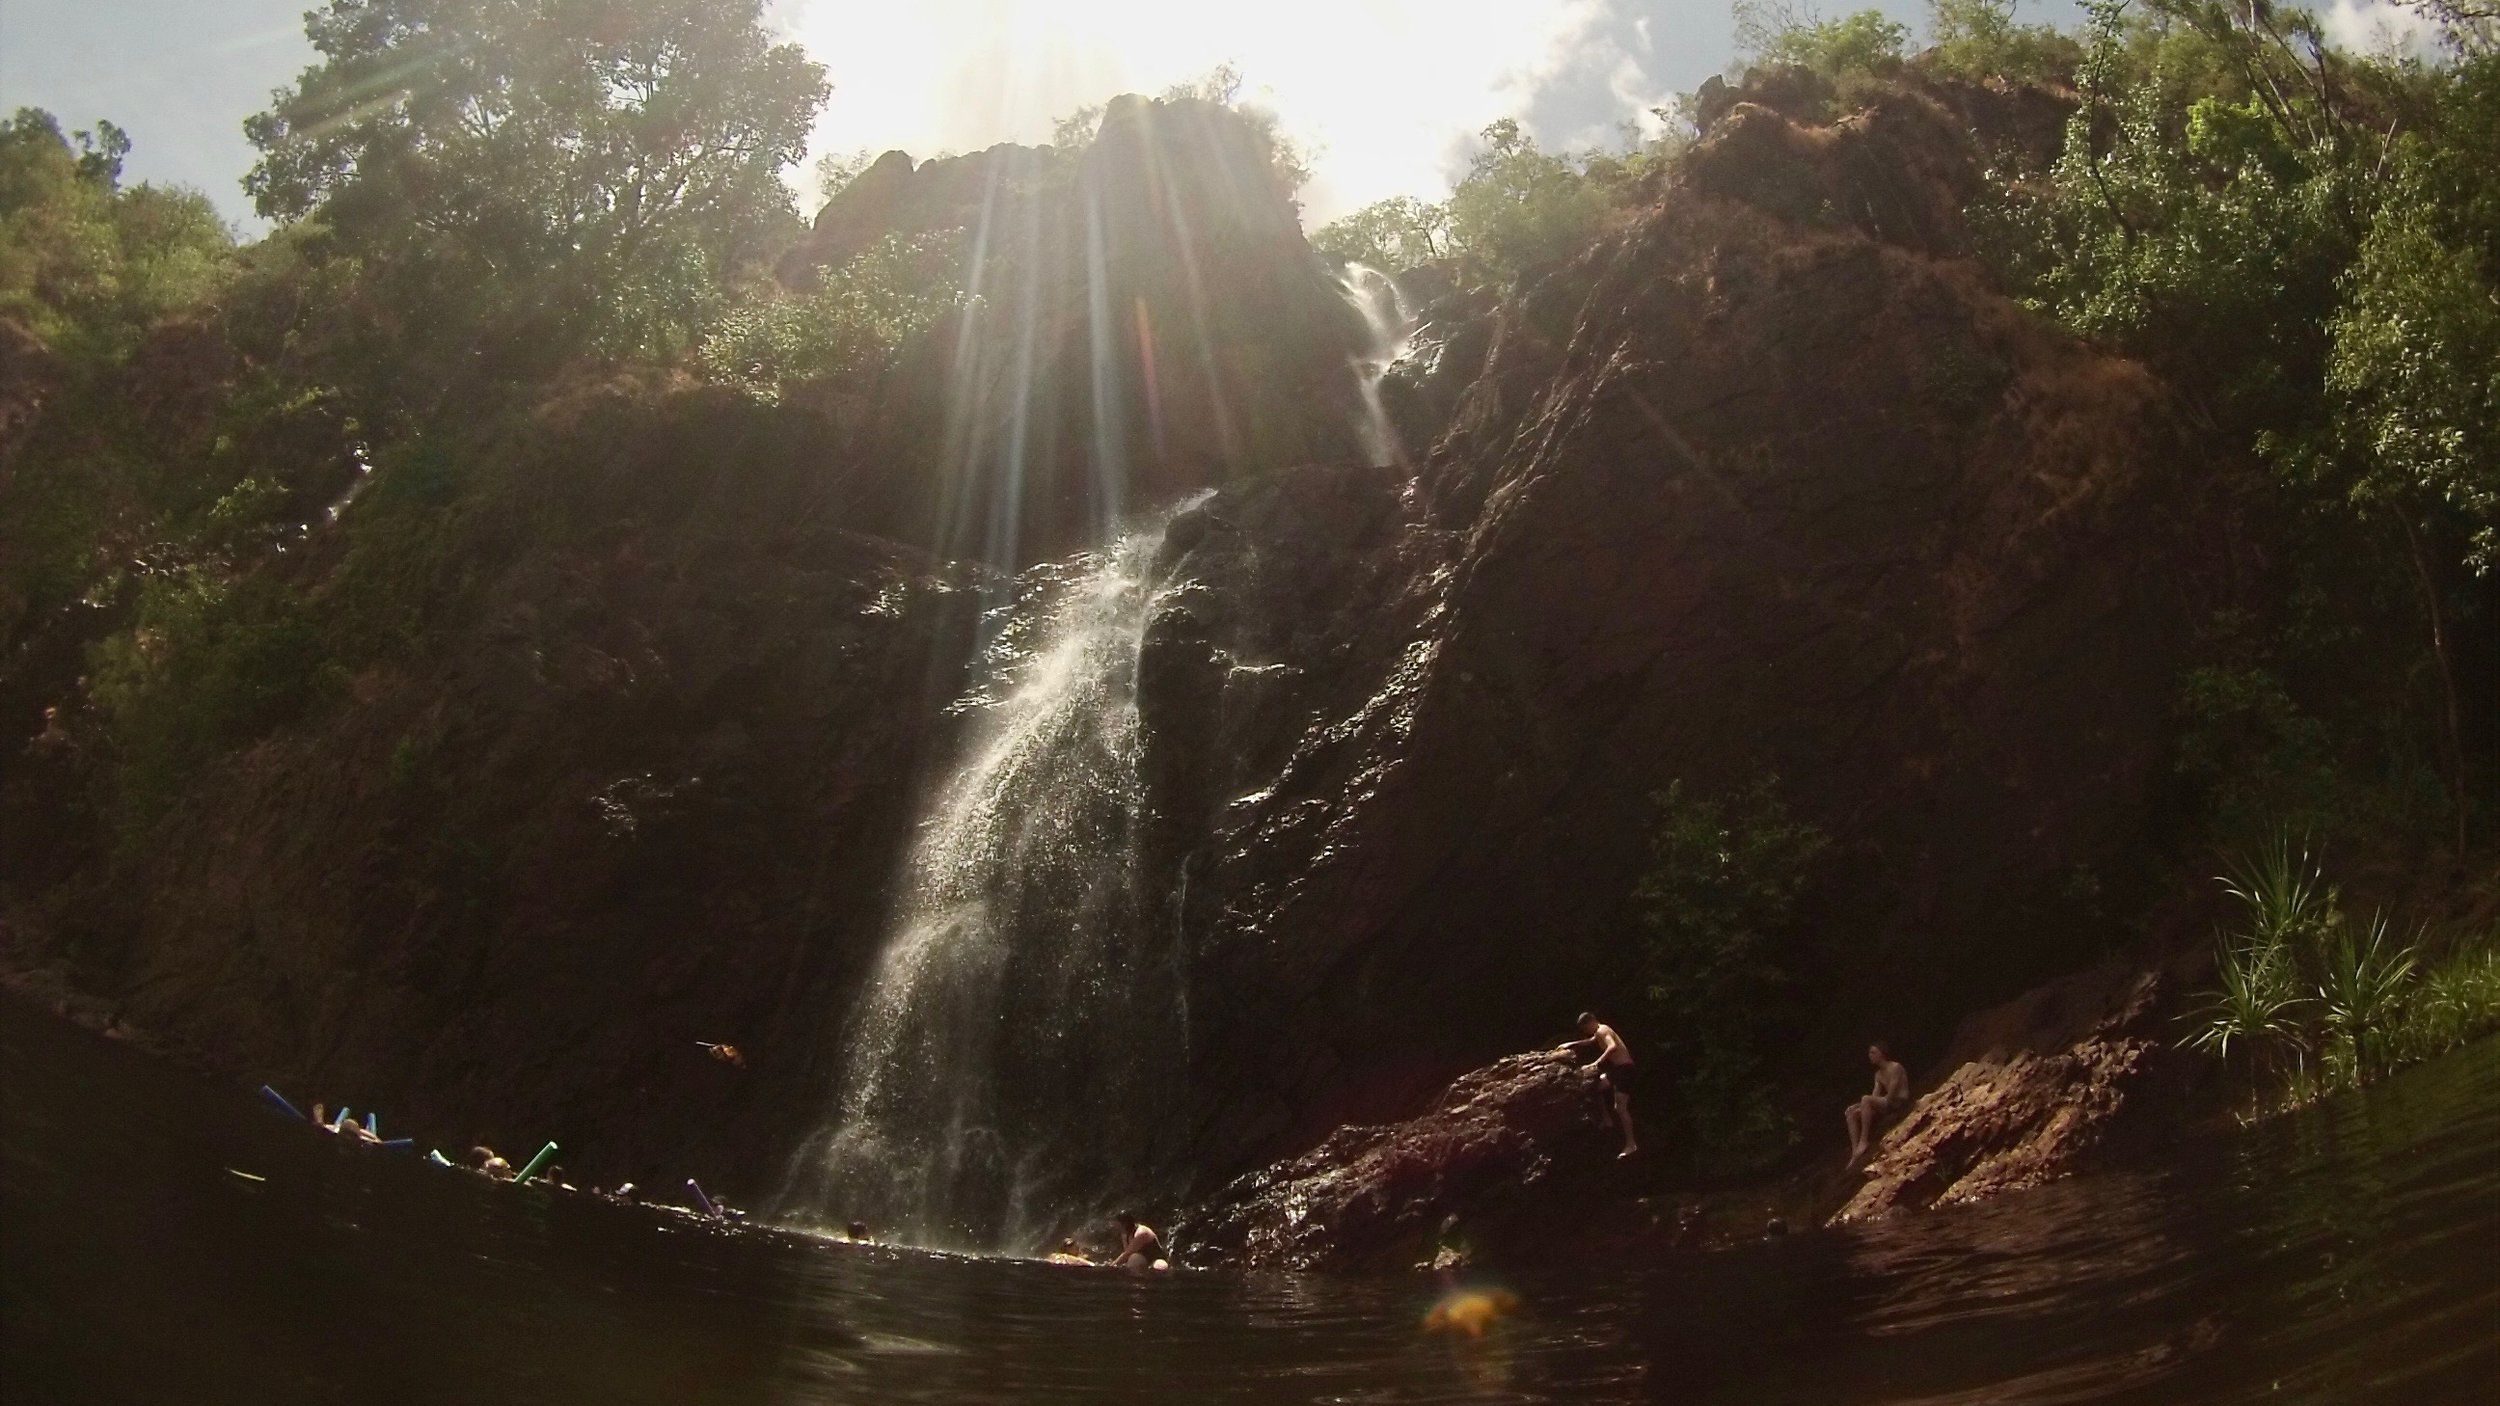 Underneath the waterfalls at Wangi Falls, Litchfied National Park